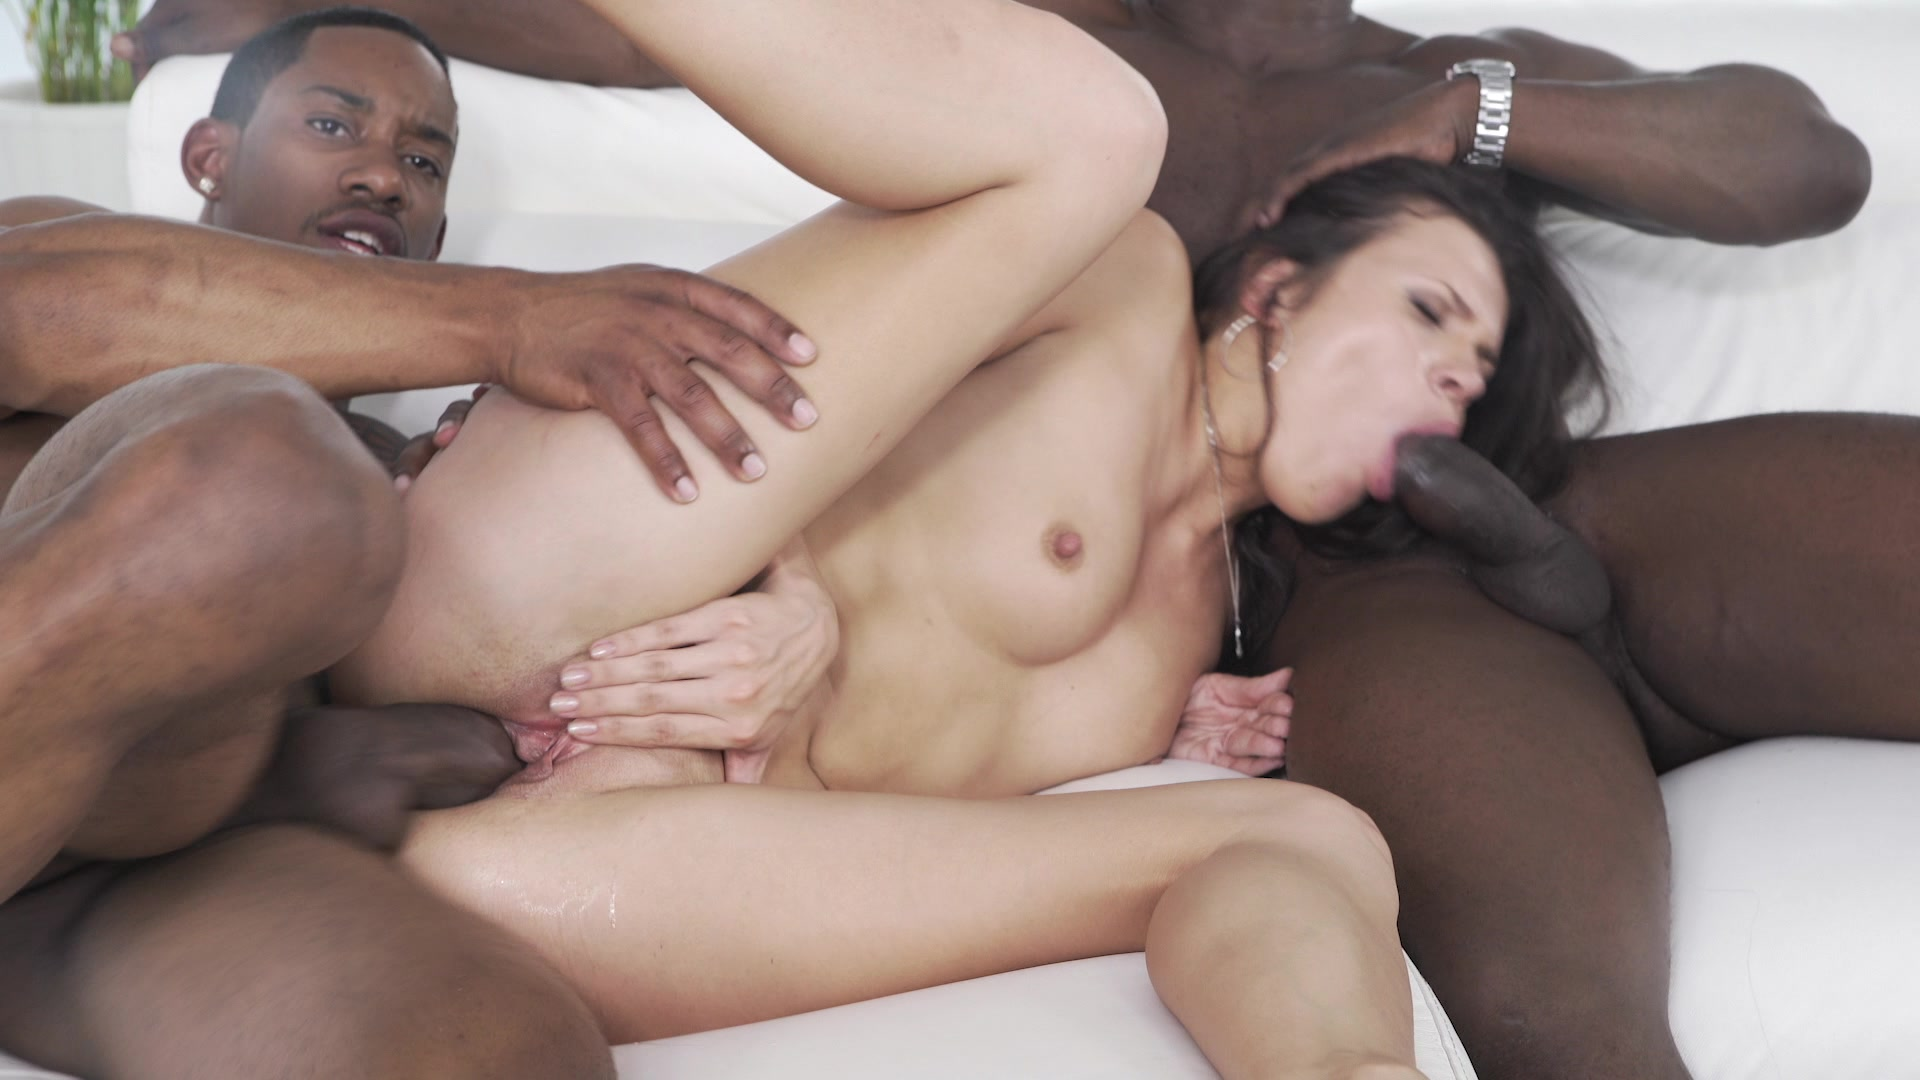 Cute White Girls Love Big Black Cocks 3  Private -1361